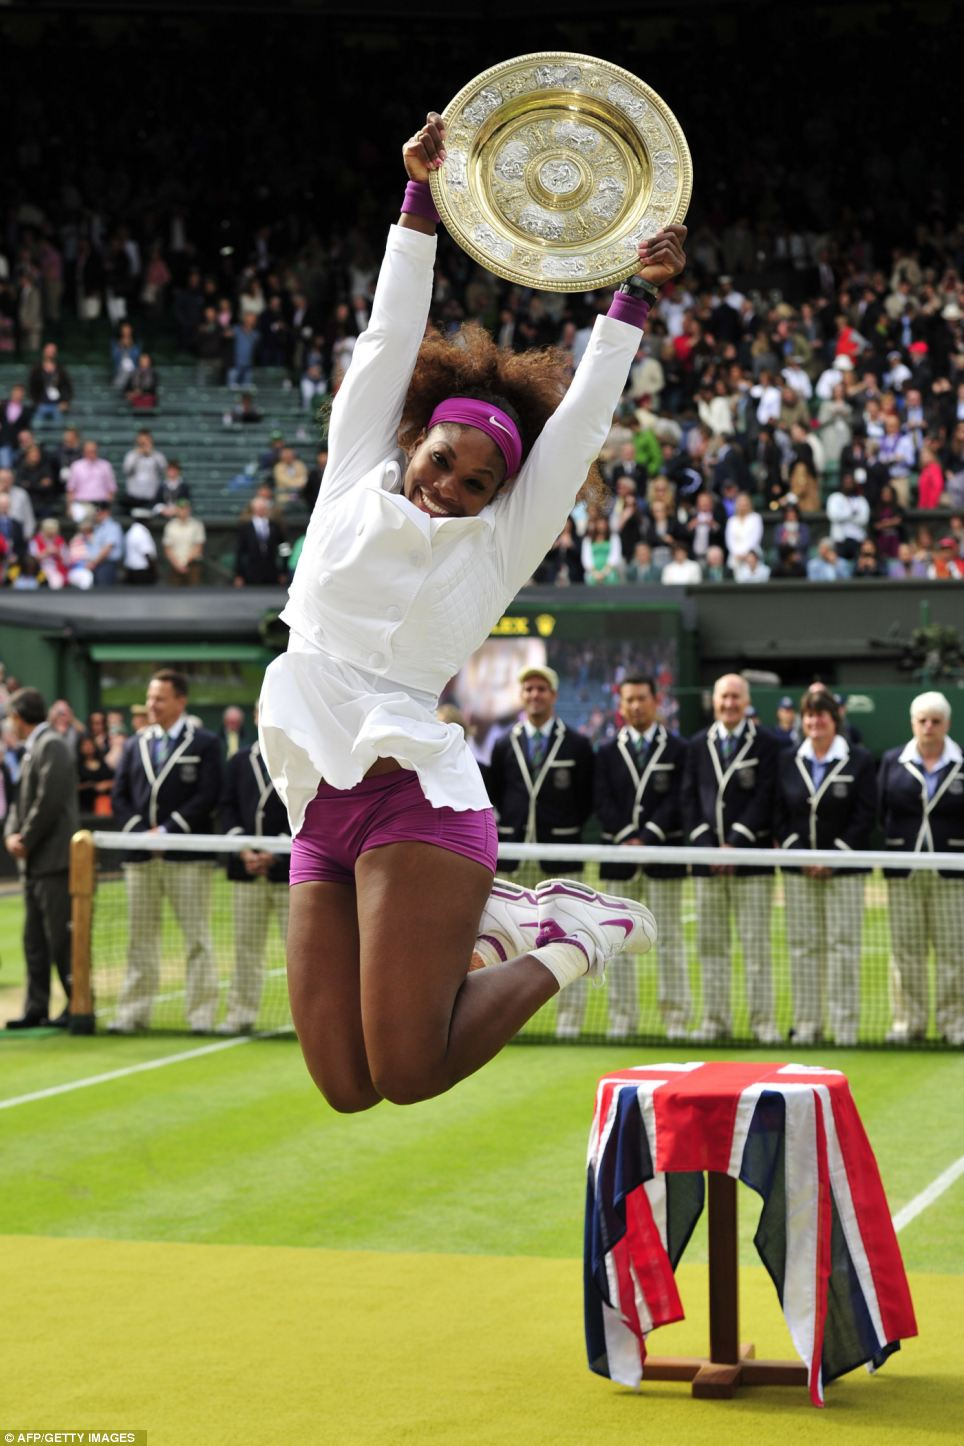 Serena Williams celebrates her victory after the women's singles final on day 12 of the 2012 Wimbledon Championships tennis tournament